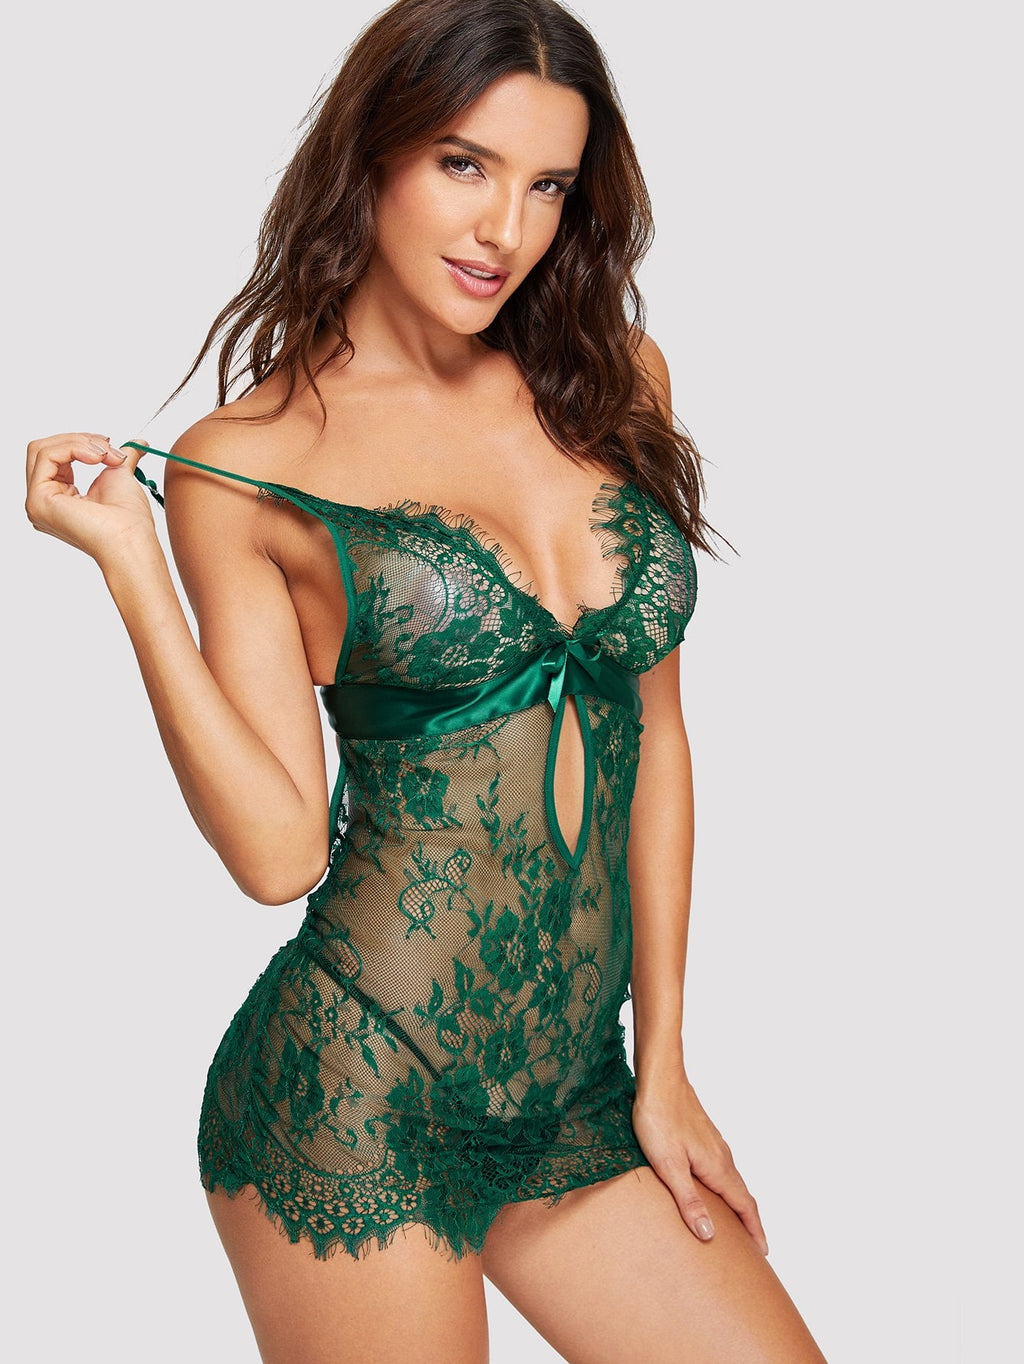 Eyelash Lace Slips with Thong - Emerald